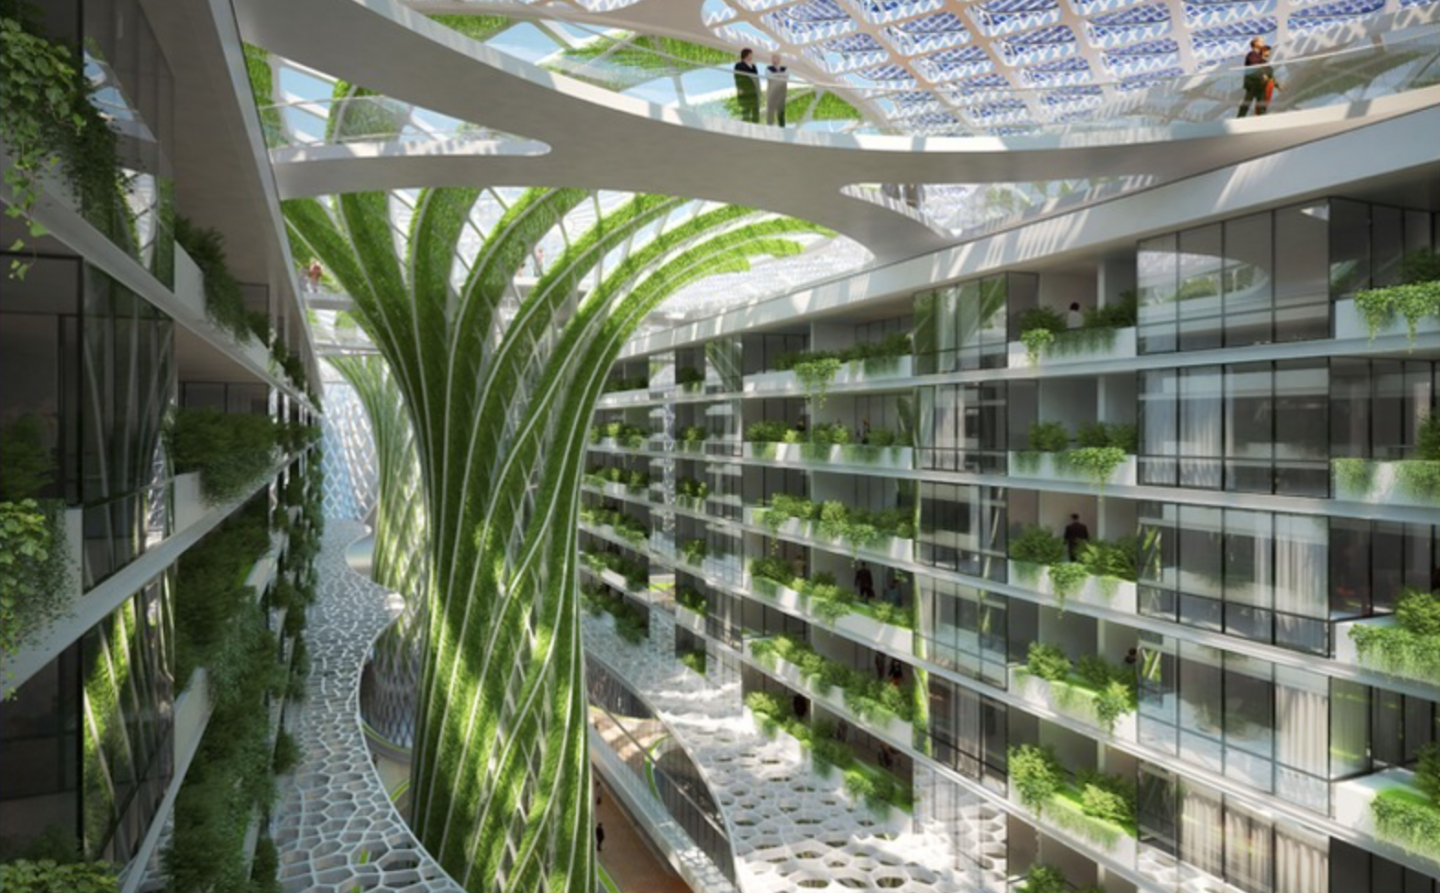 About 1000 apartments will benefit from the green technology which will save 50% on energy costs.